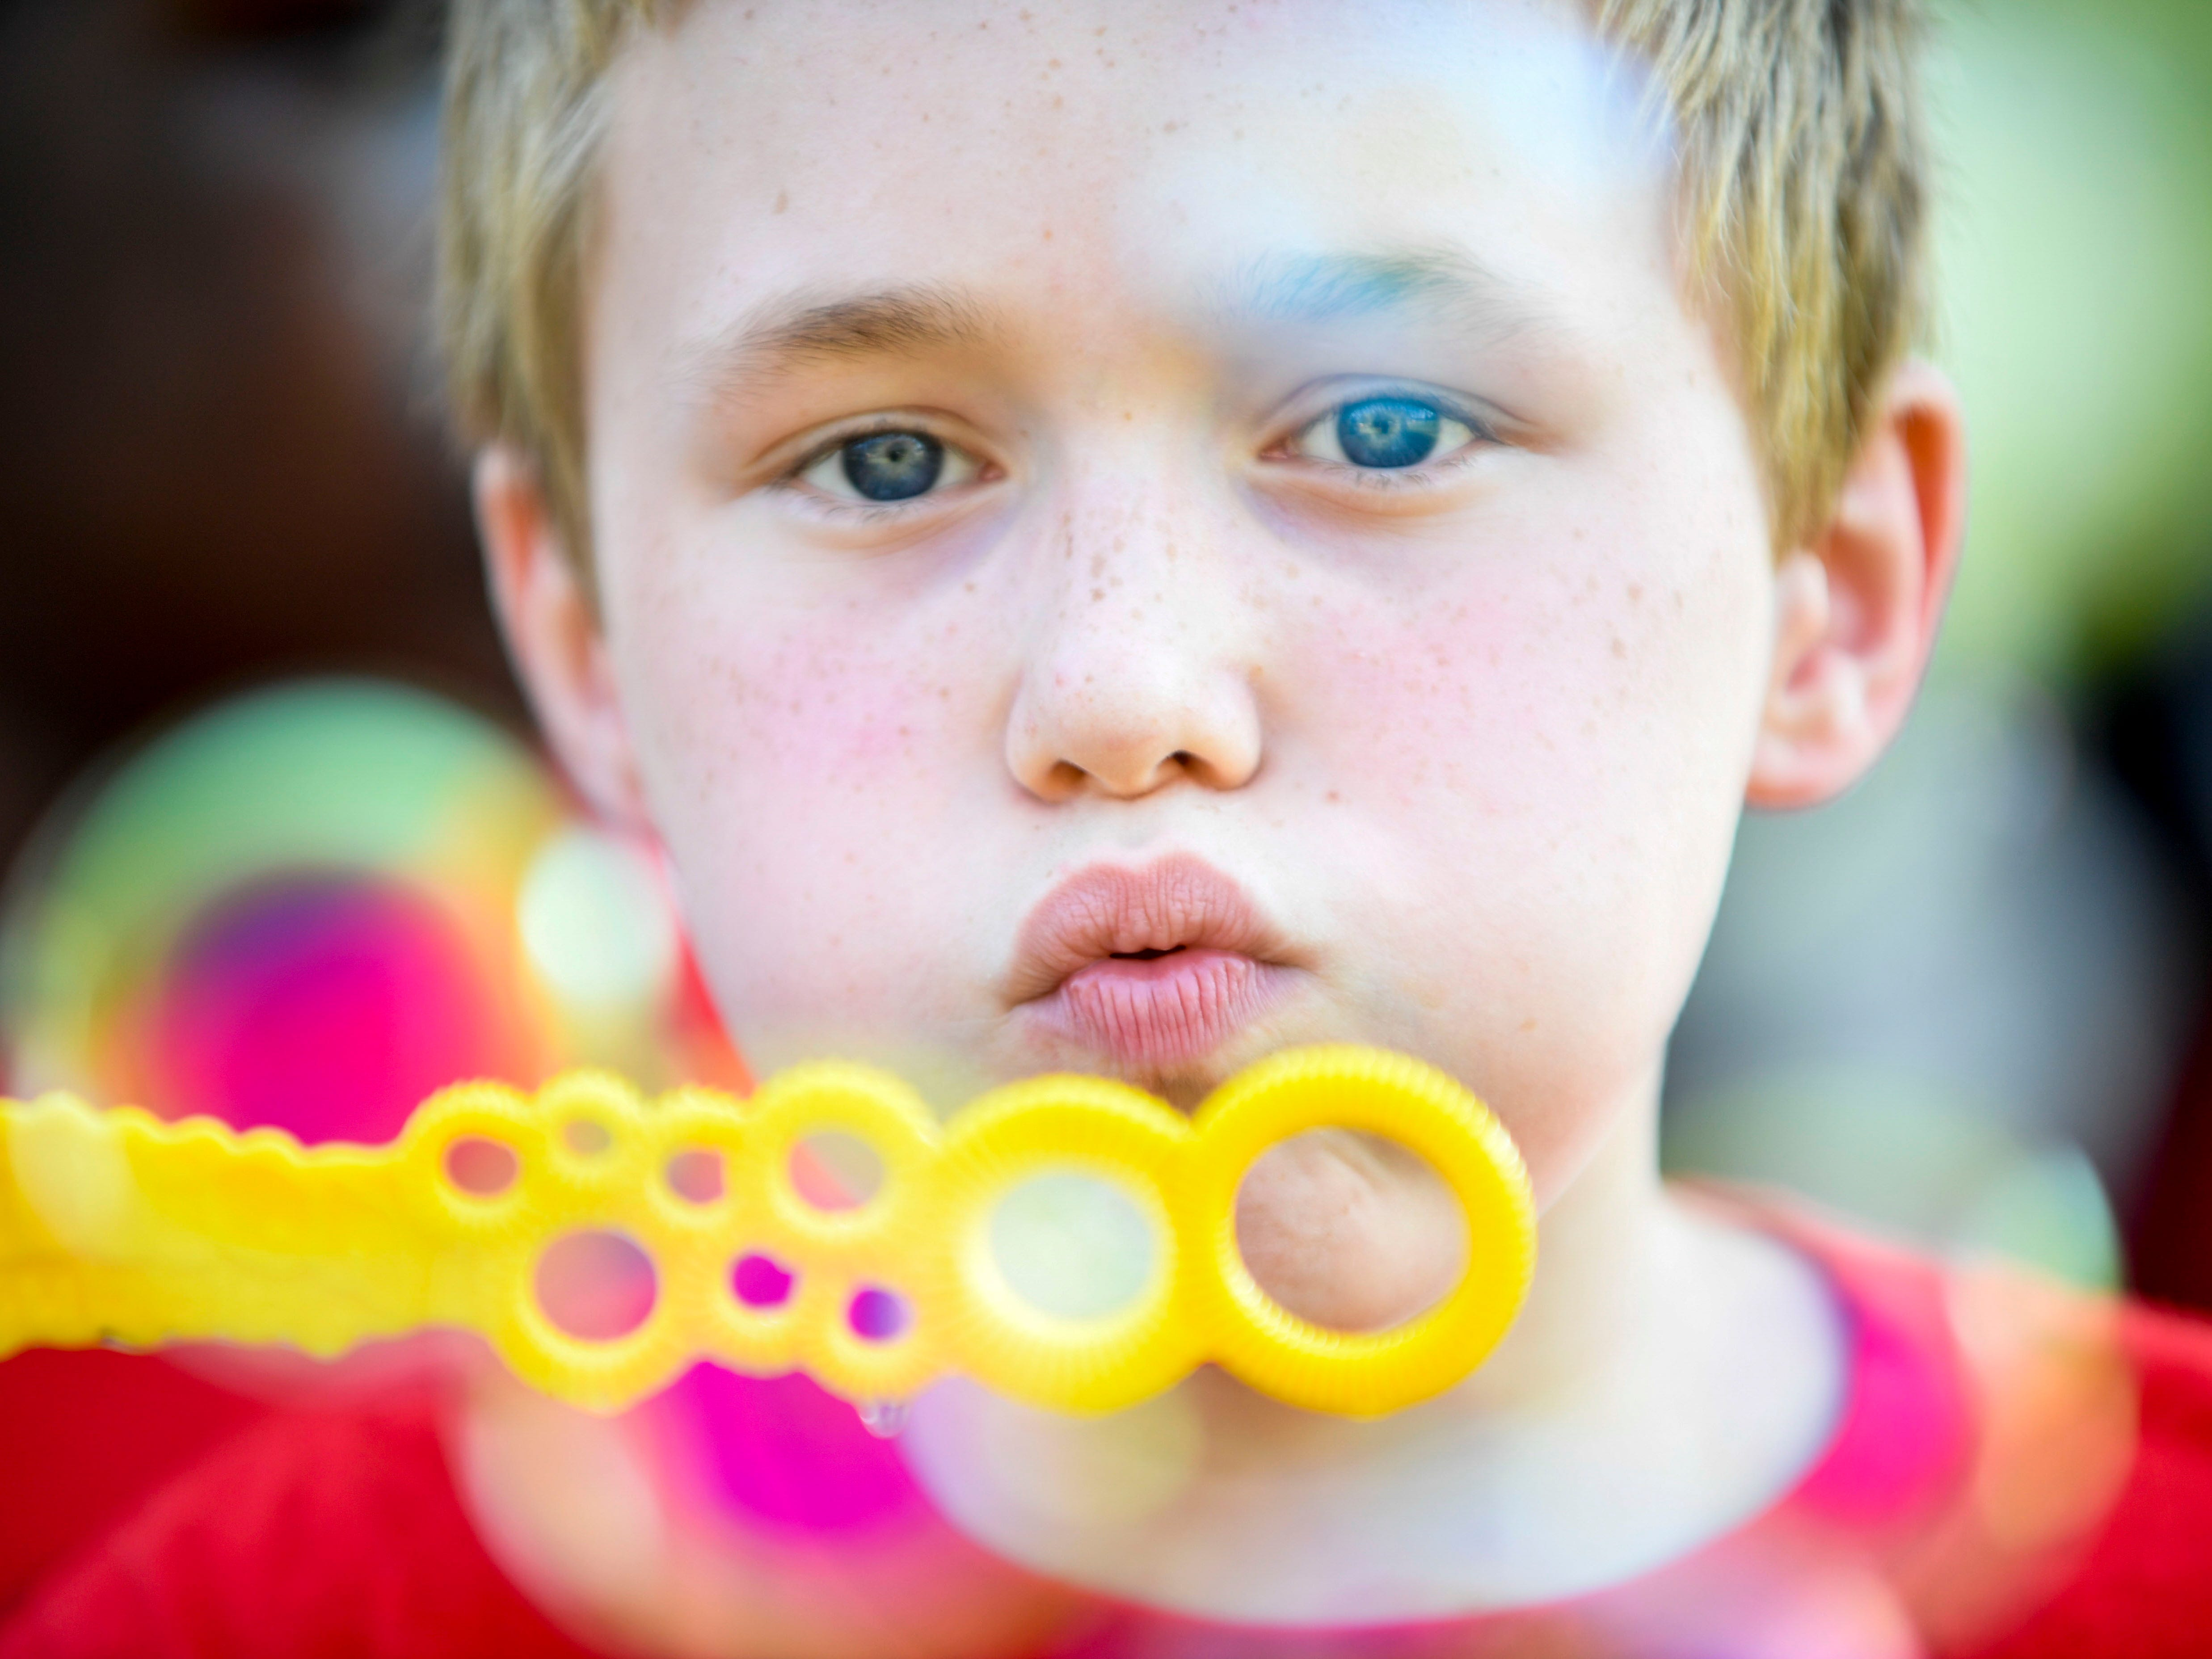 A young boy blows bubbles at an activity station at the Day of Champions celebration held at Jackson Fairgrounds Park in Jackson, Tenn., on Wednesday, Sept. 19, 2018.